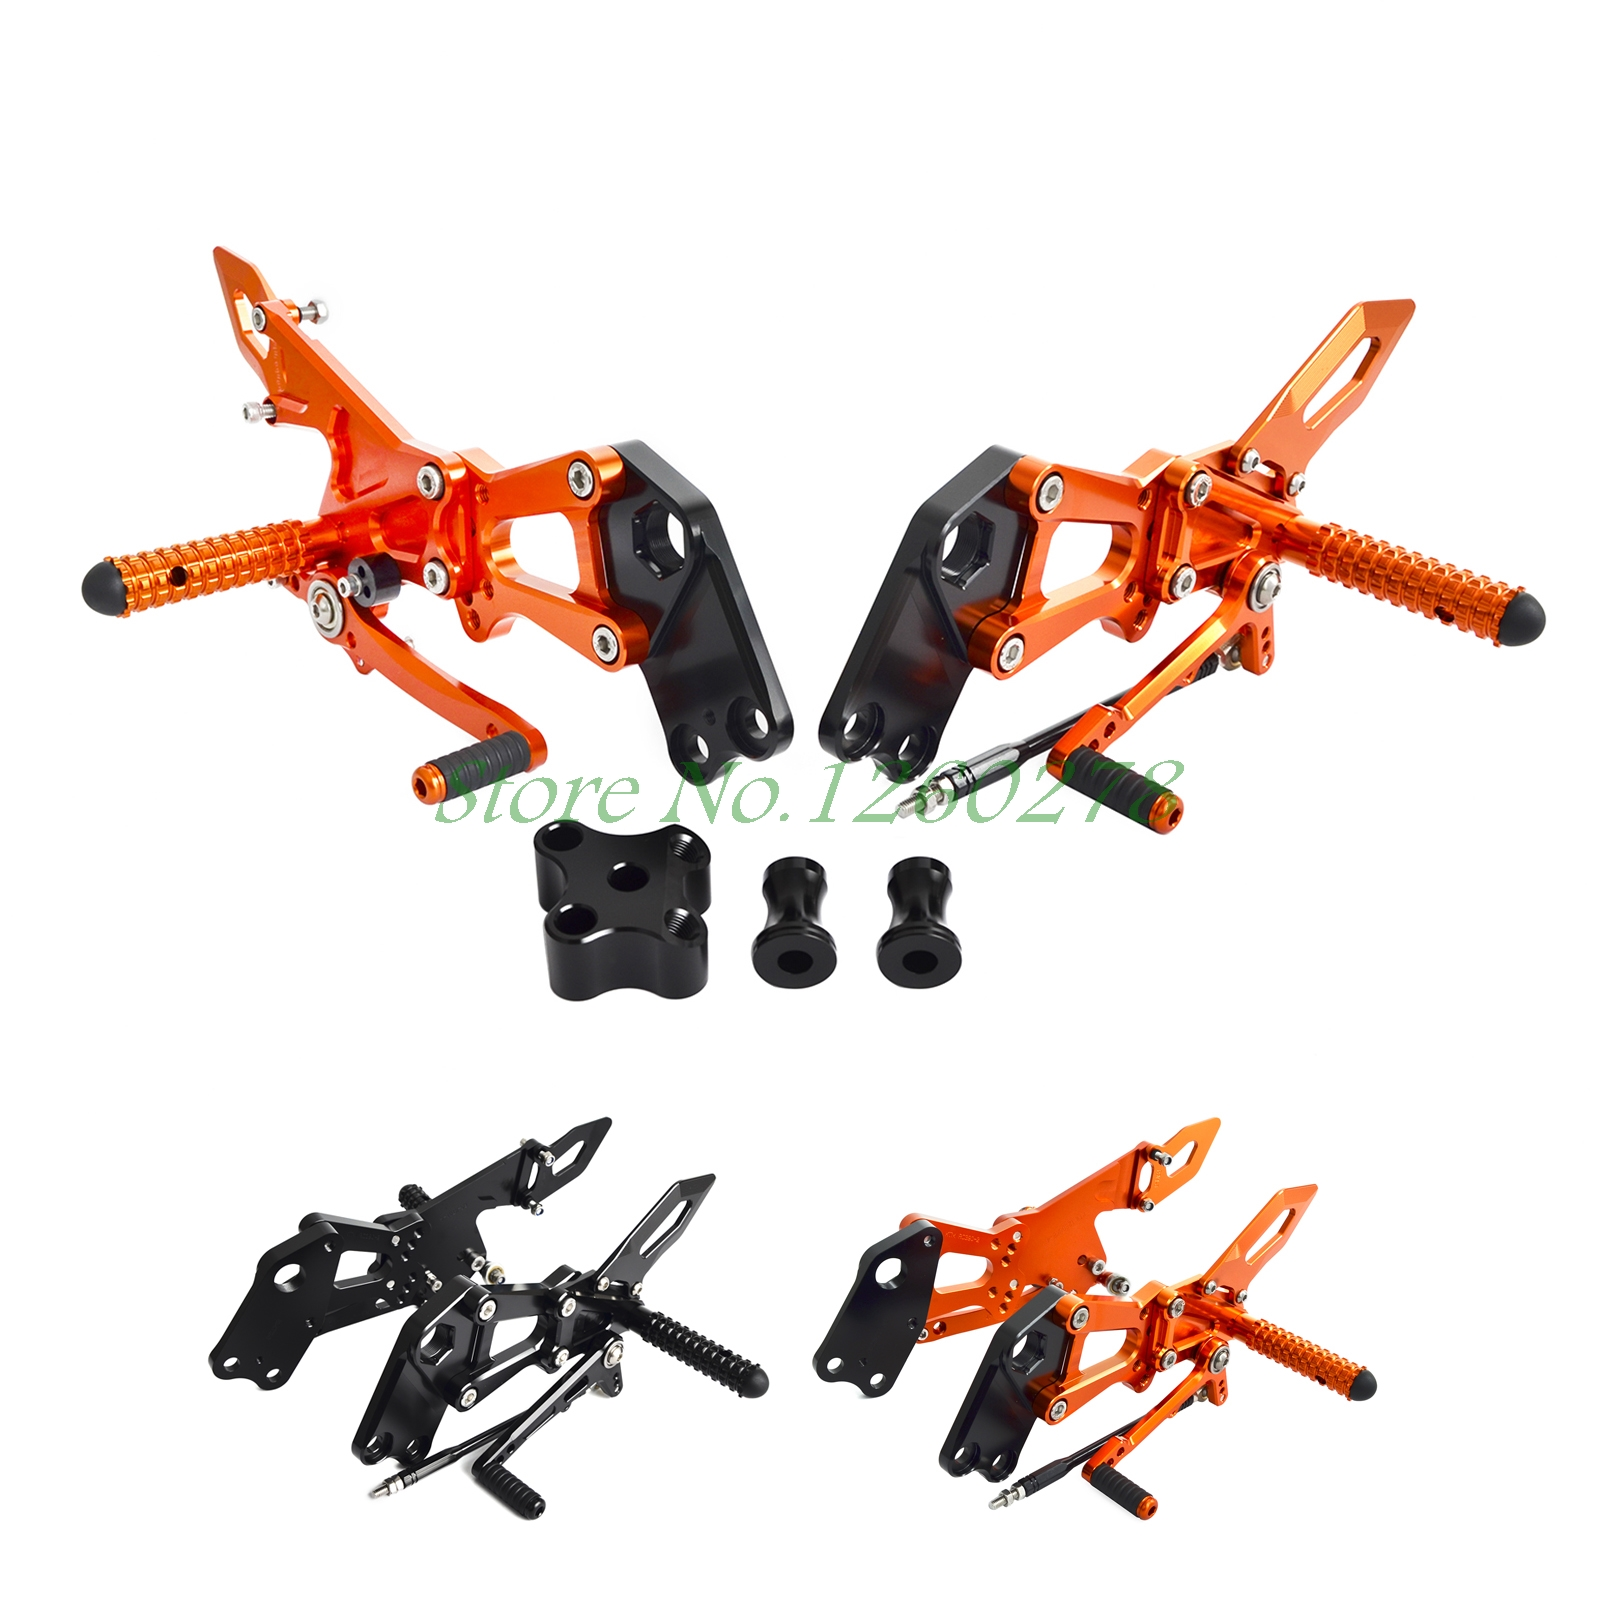 Motorcycle Rearsets Footrest Peg Rear Set For KTM RC 125 200 390 2014 2015 2016 2017 RC125 RC200 RC390 motorcycle front rider seat leather cover for ktm 125 200 390 duke